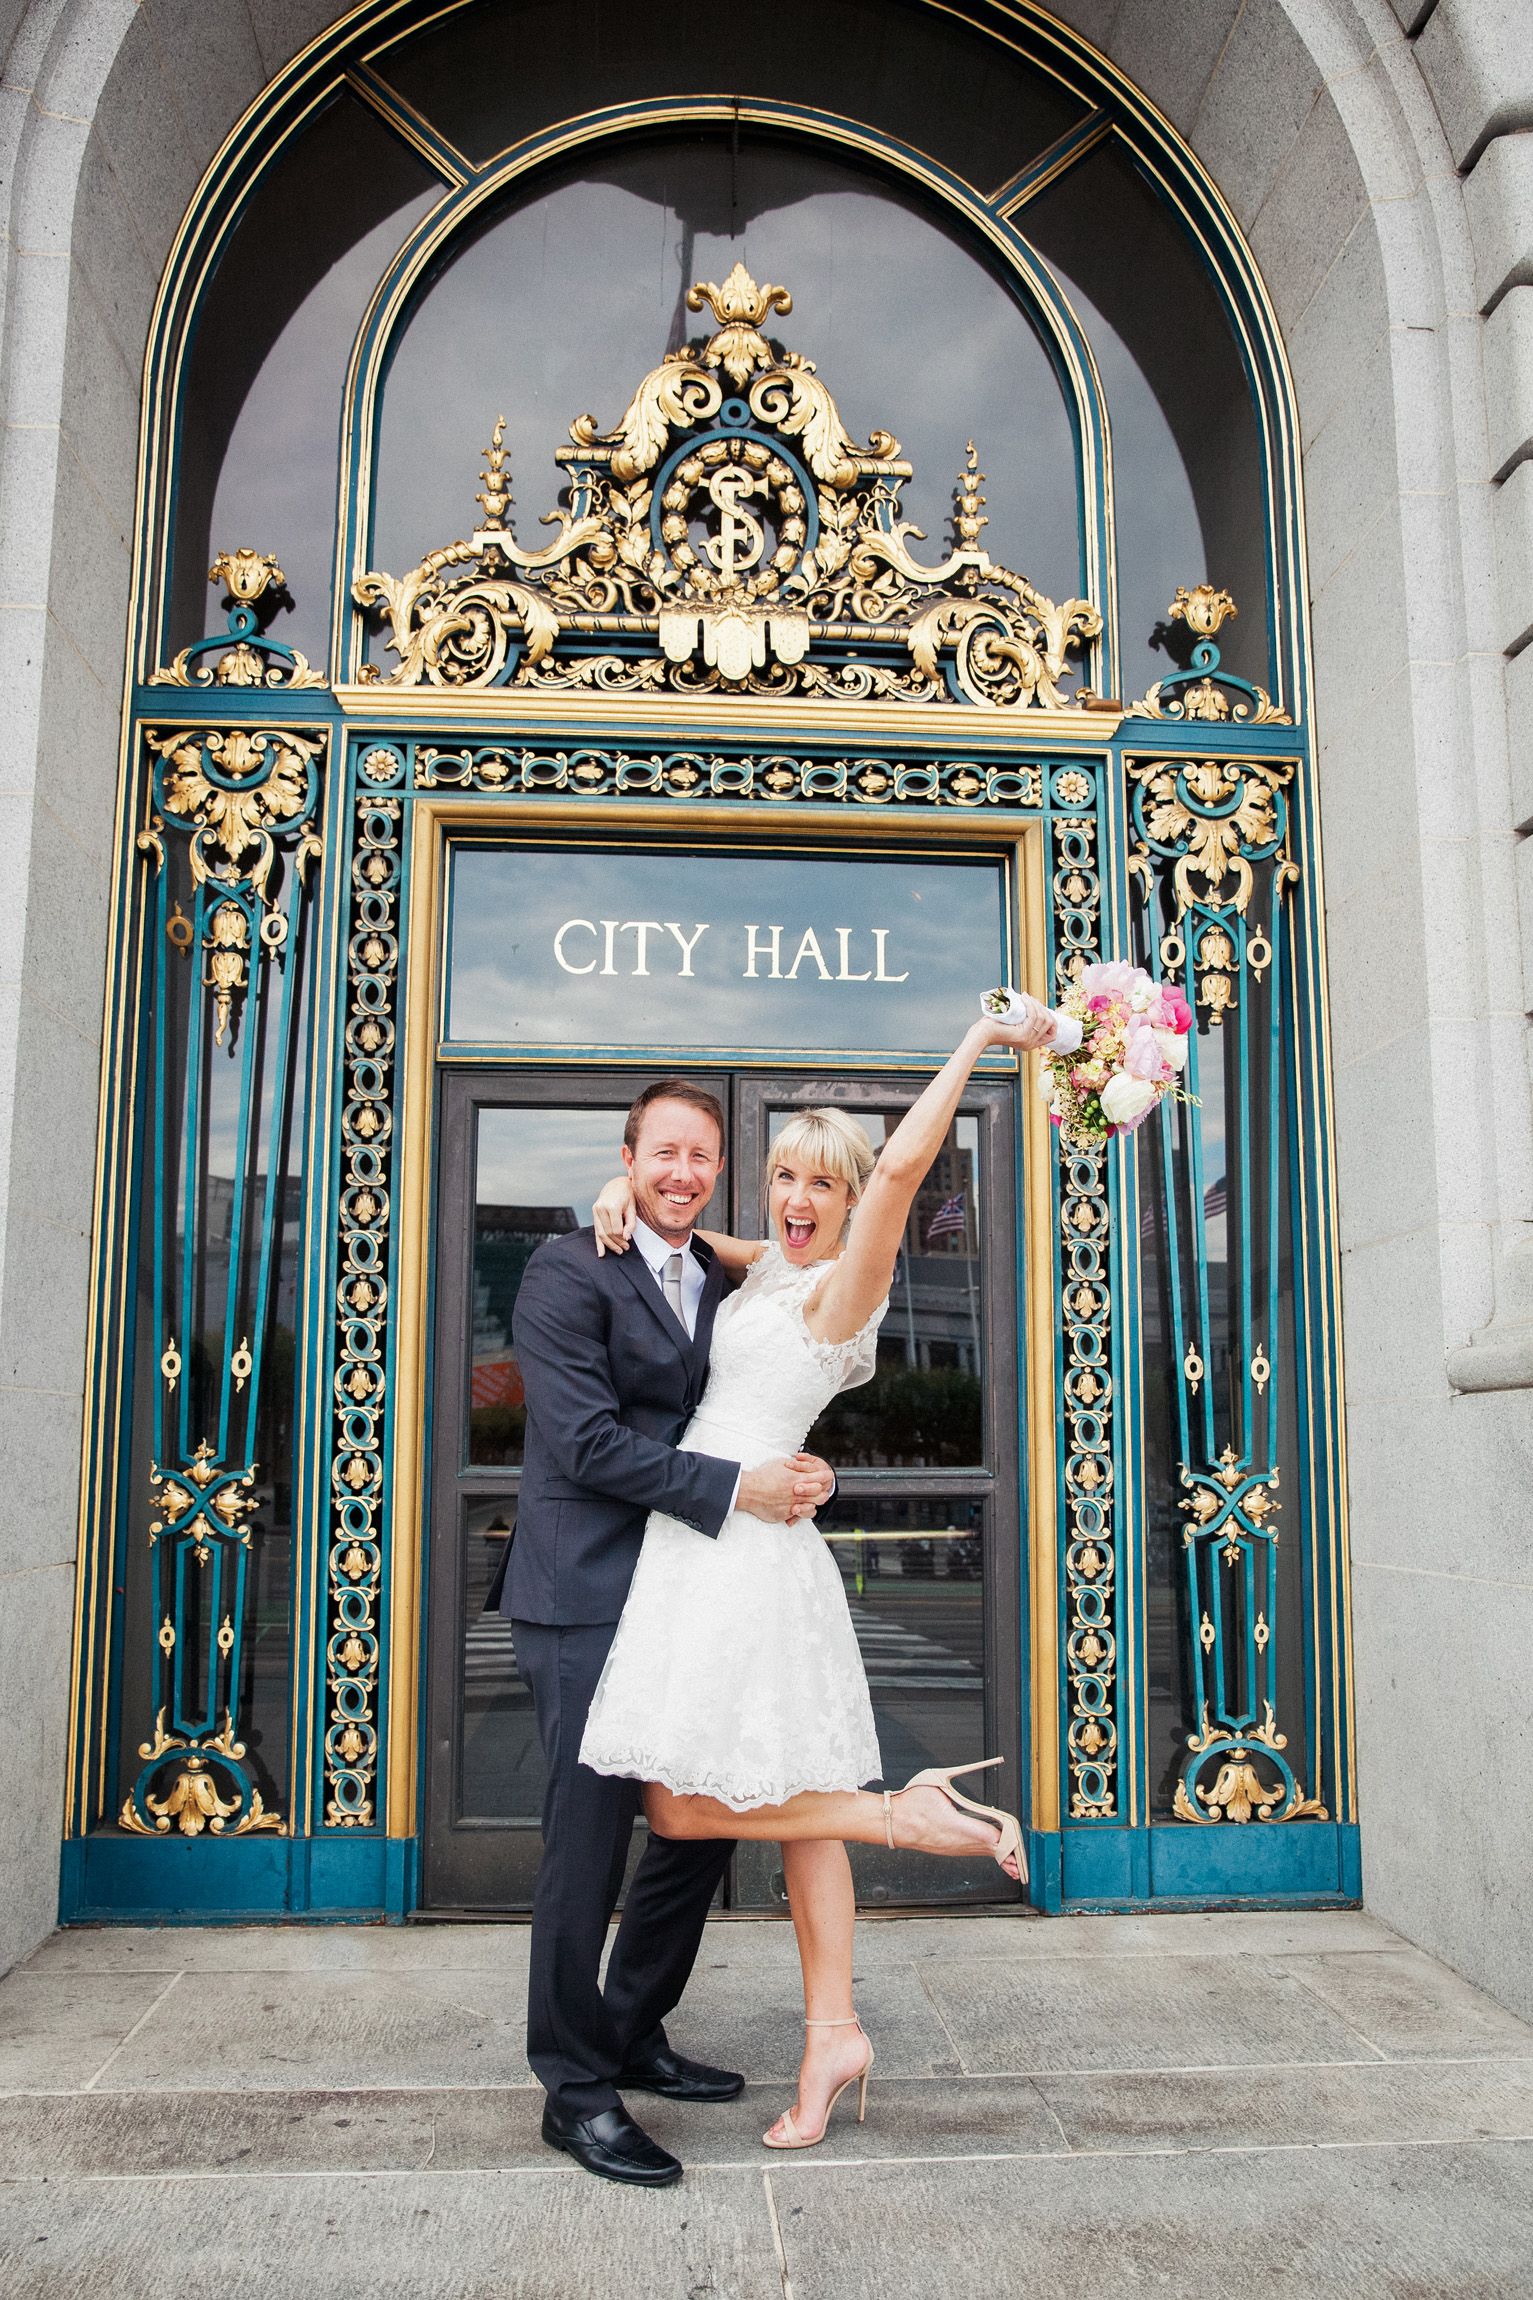 002_janaeshieldsphotography_sanfrancisco_cityhall_weddings.jpg